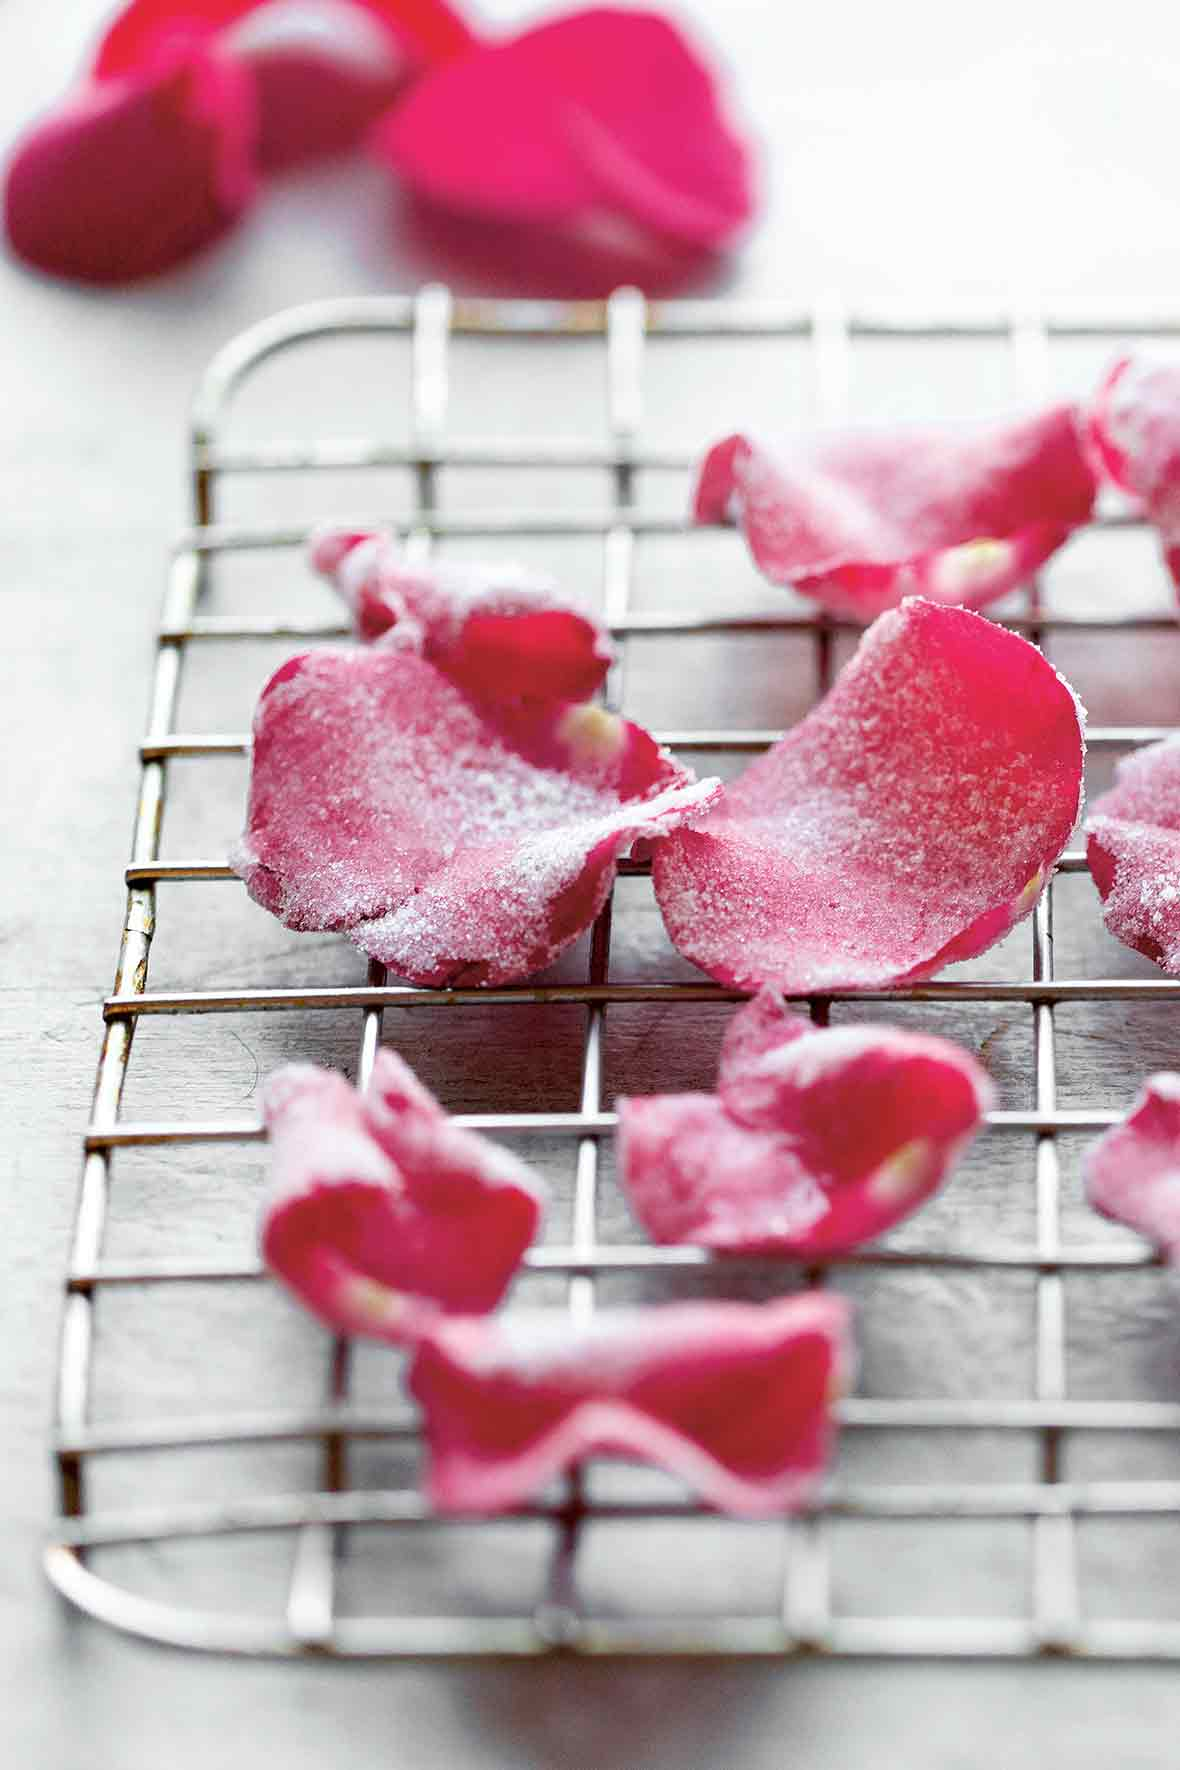 Candied Rose Petals - the Round Up of Rose Recipes via @PagingSupermom